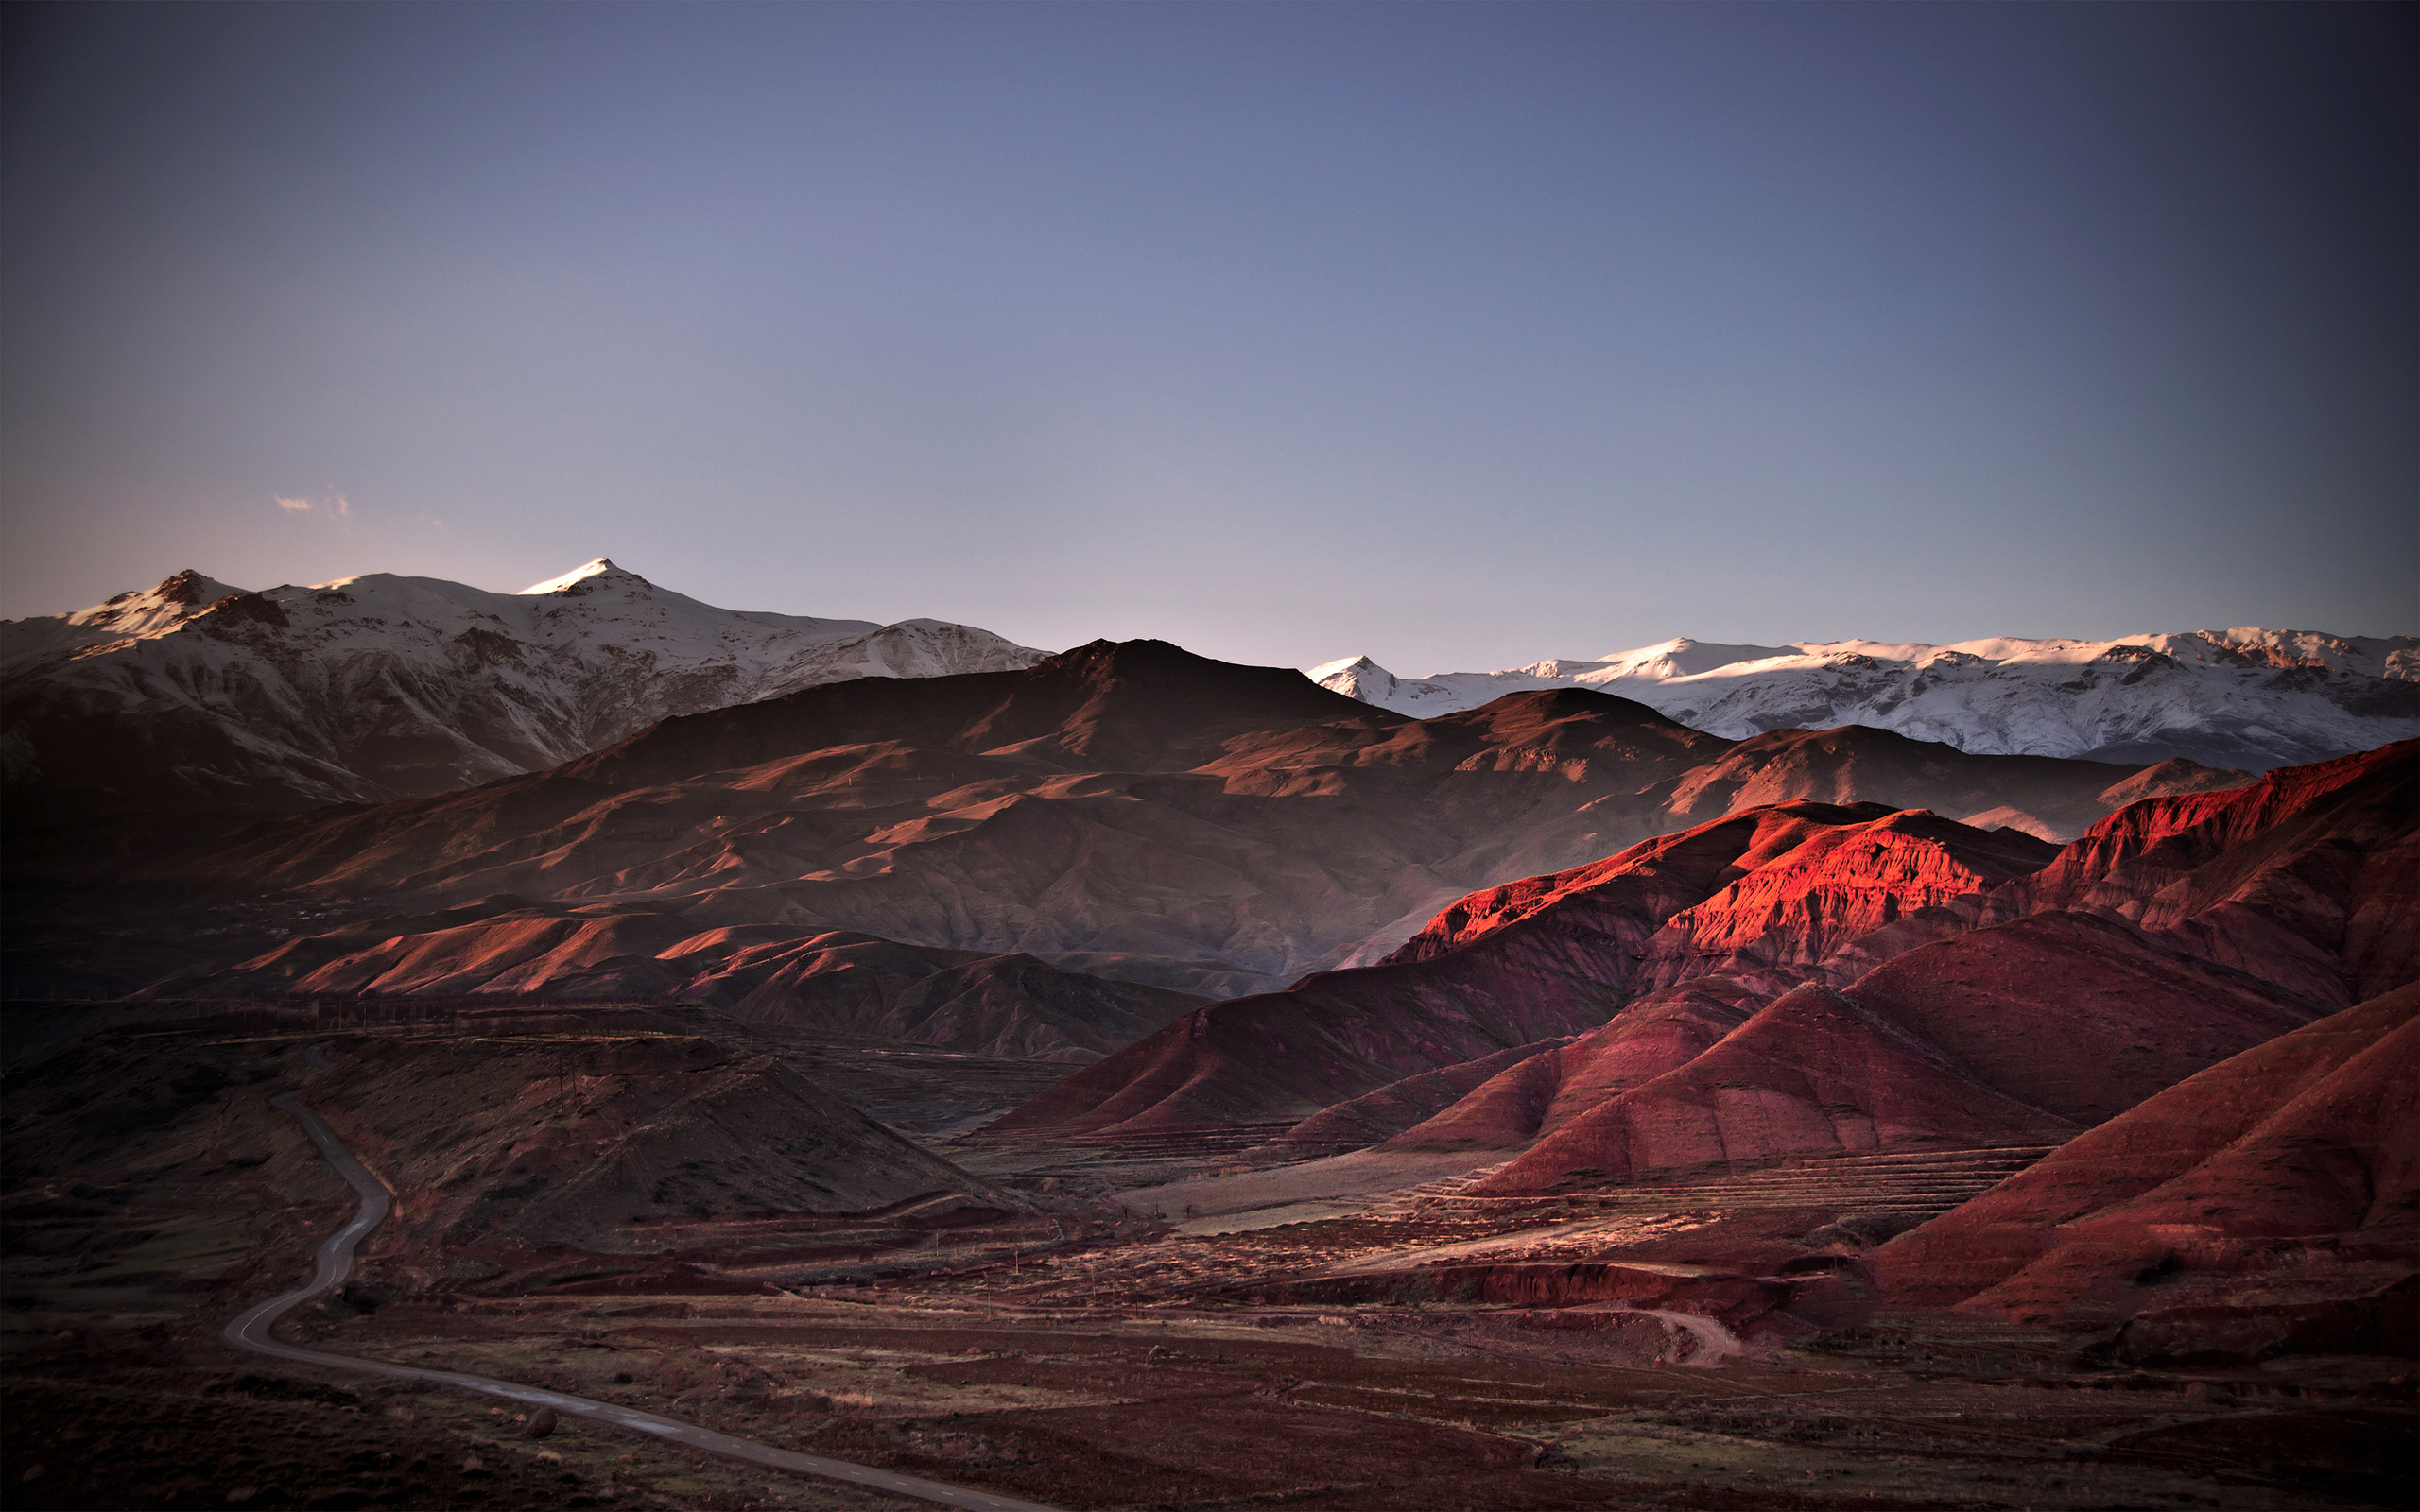 Alamut mountains